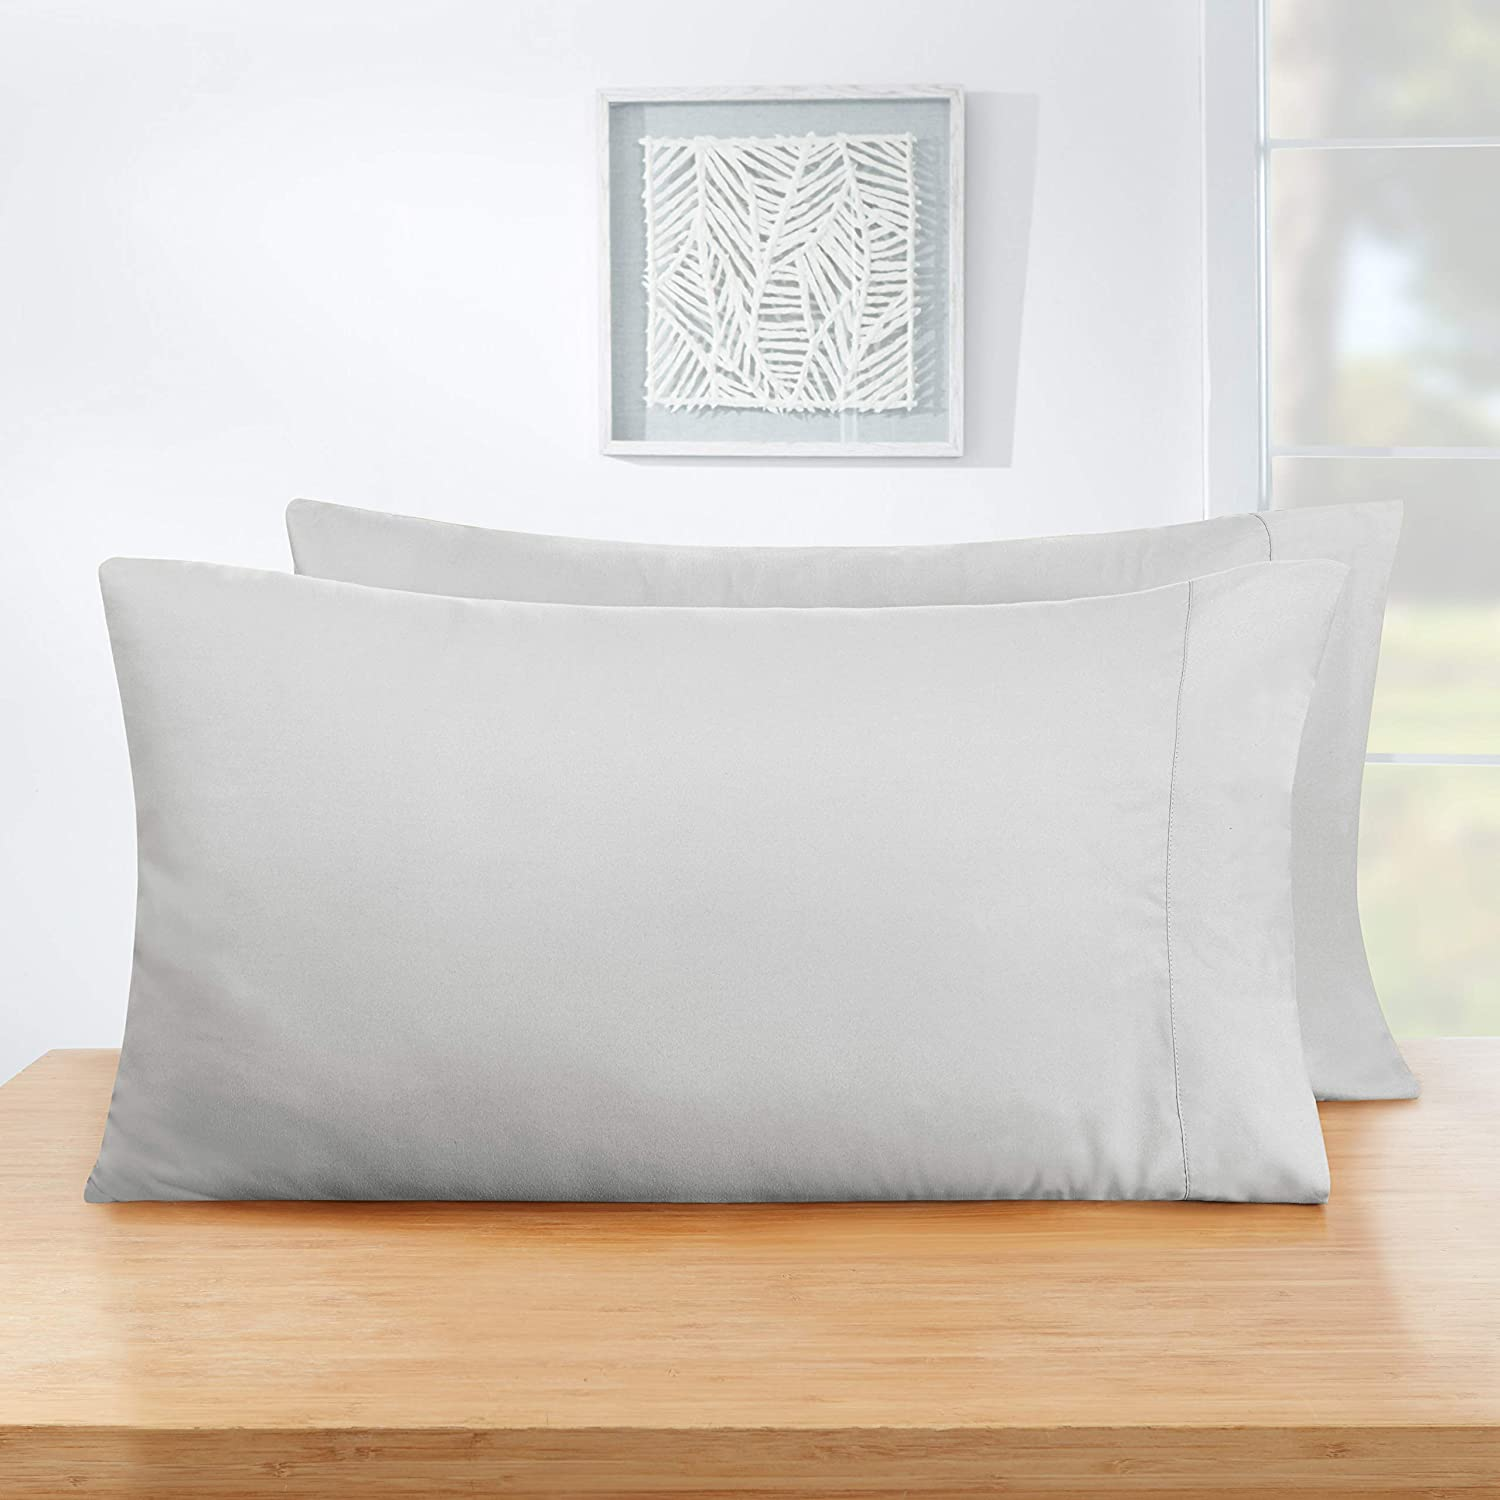 Empyrean Bedding Soft Pillow Cases - Double Brushed Microfiber Hypoallergenic Pillow Covers - Premium Bed Pillow Cases - Luxury Hotel Pillowcases - Standard Size, Set of 2 - Silver